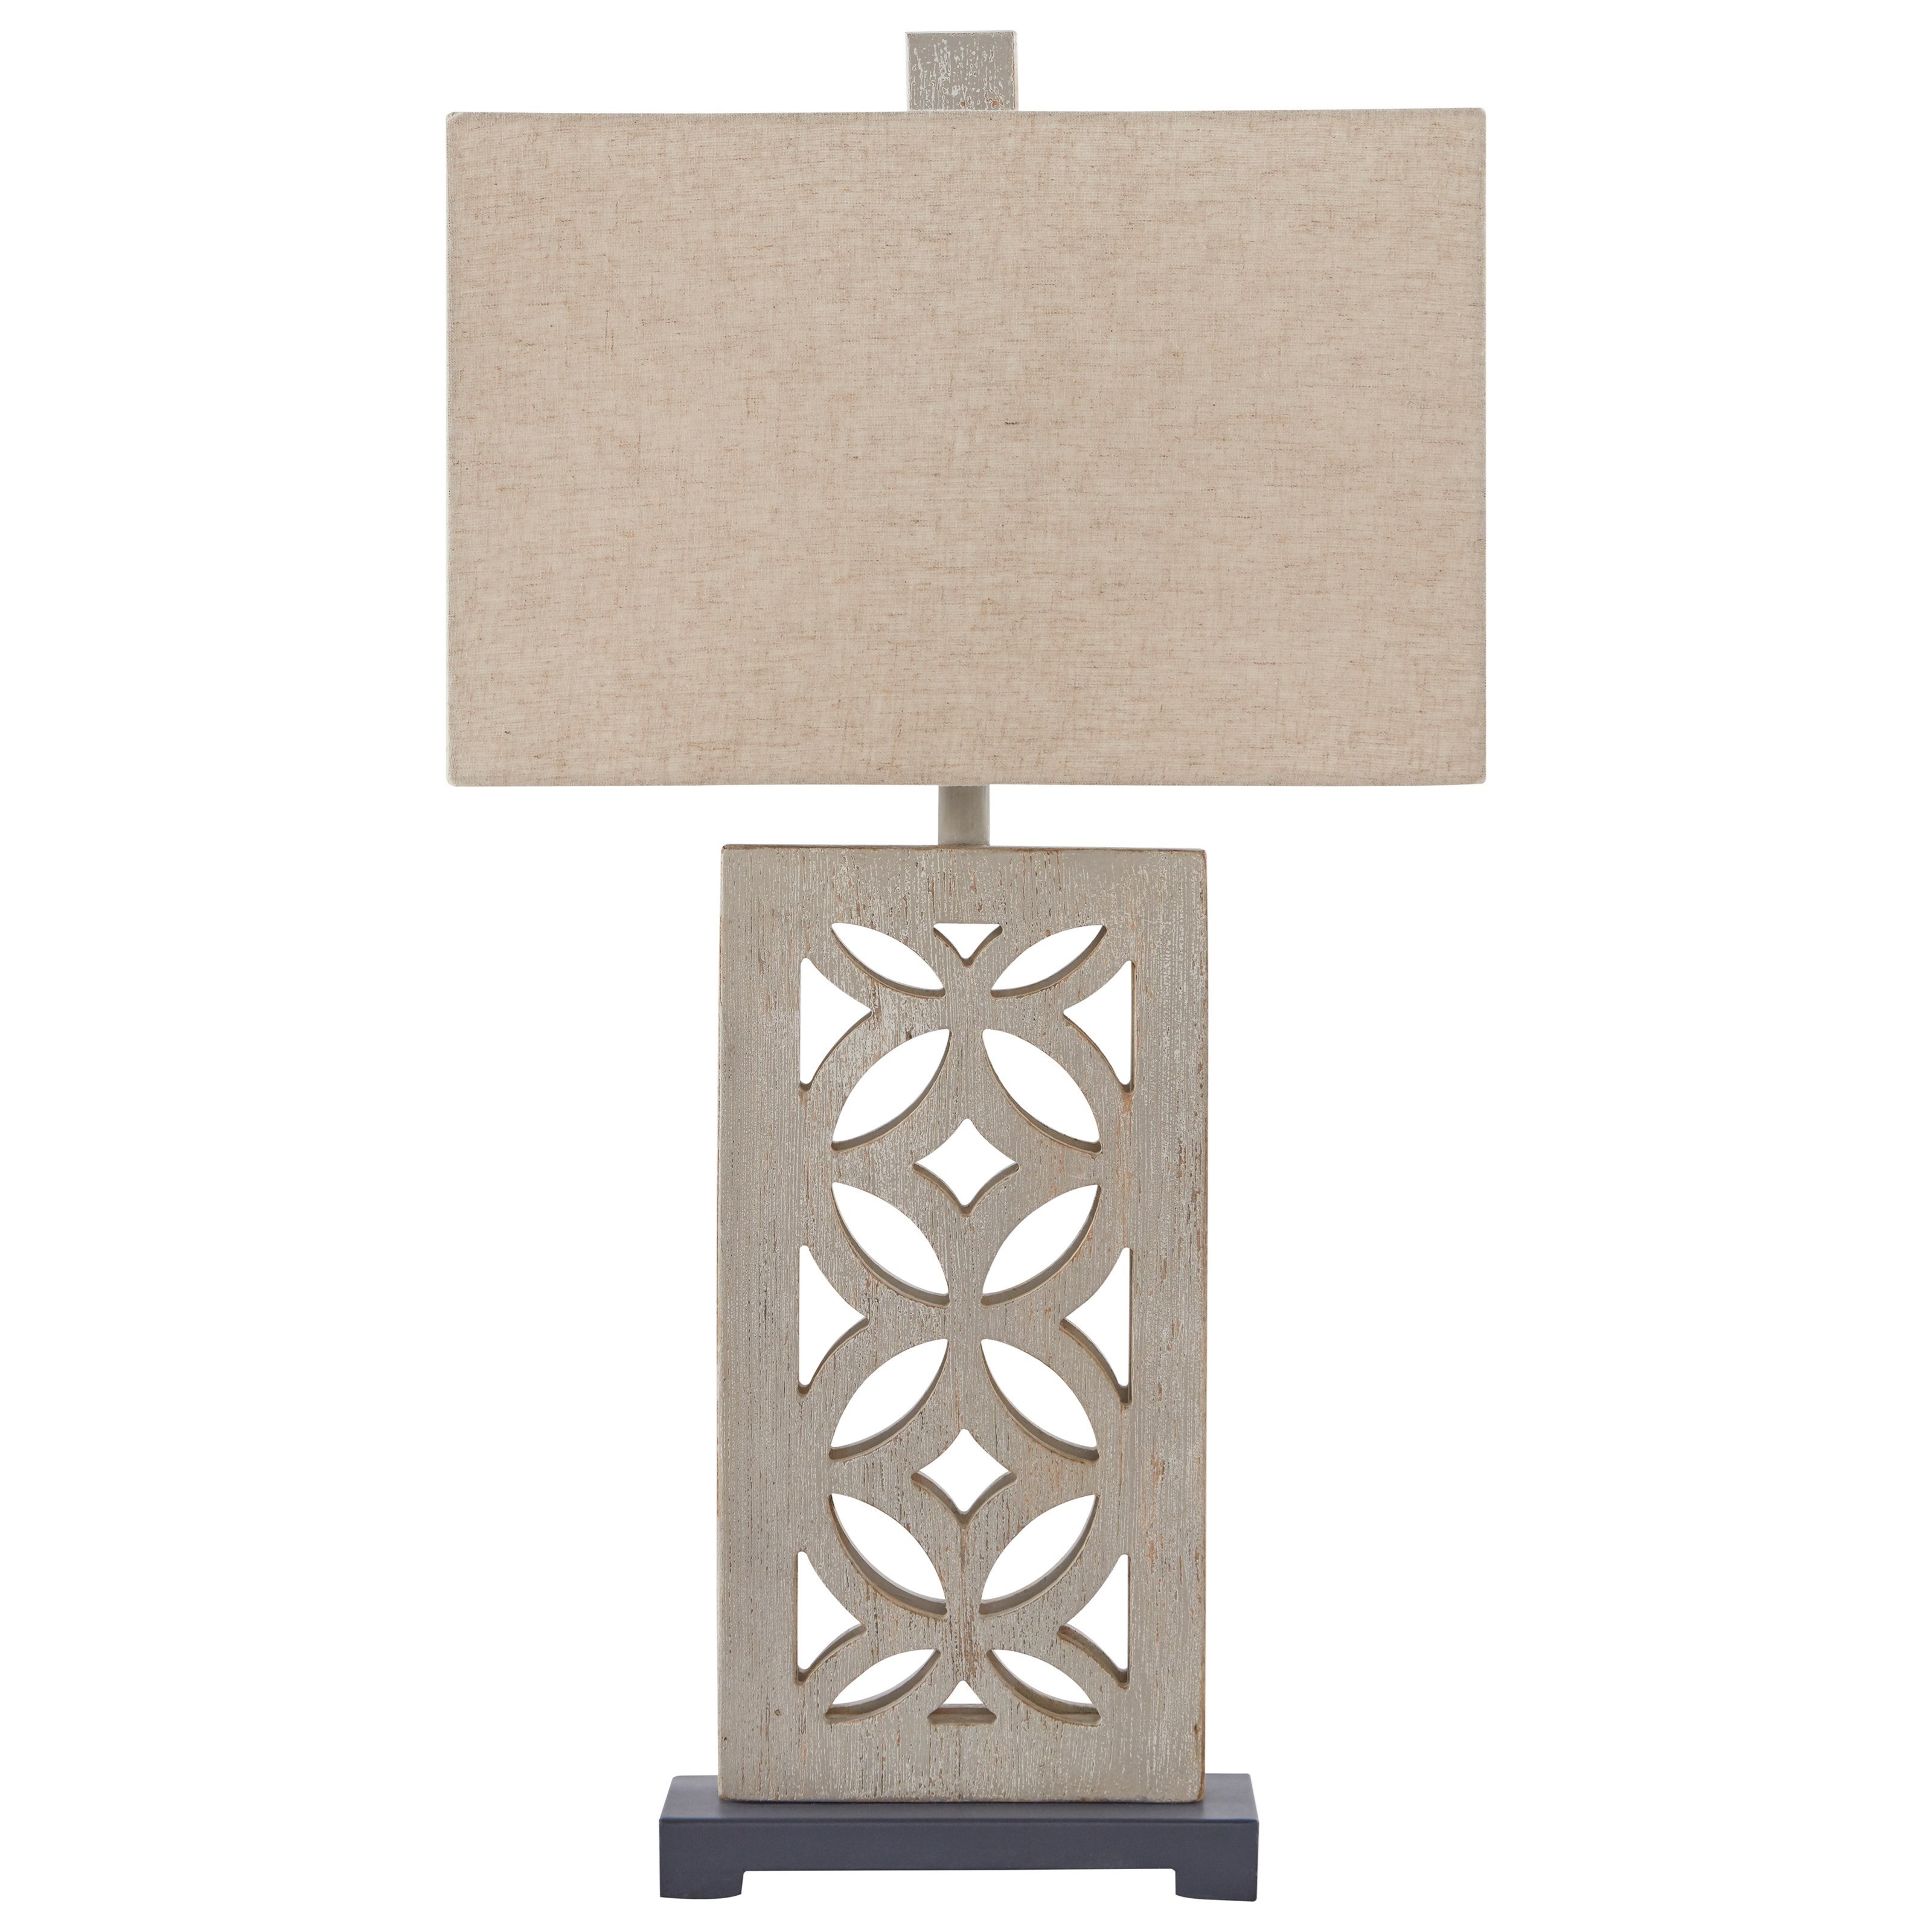 Mairwen Antique Gray Wood Table Lamp